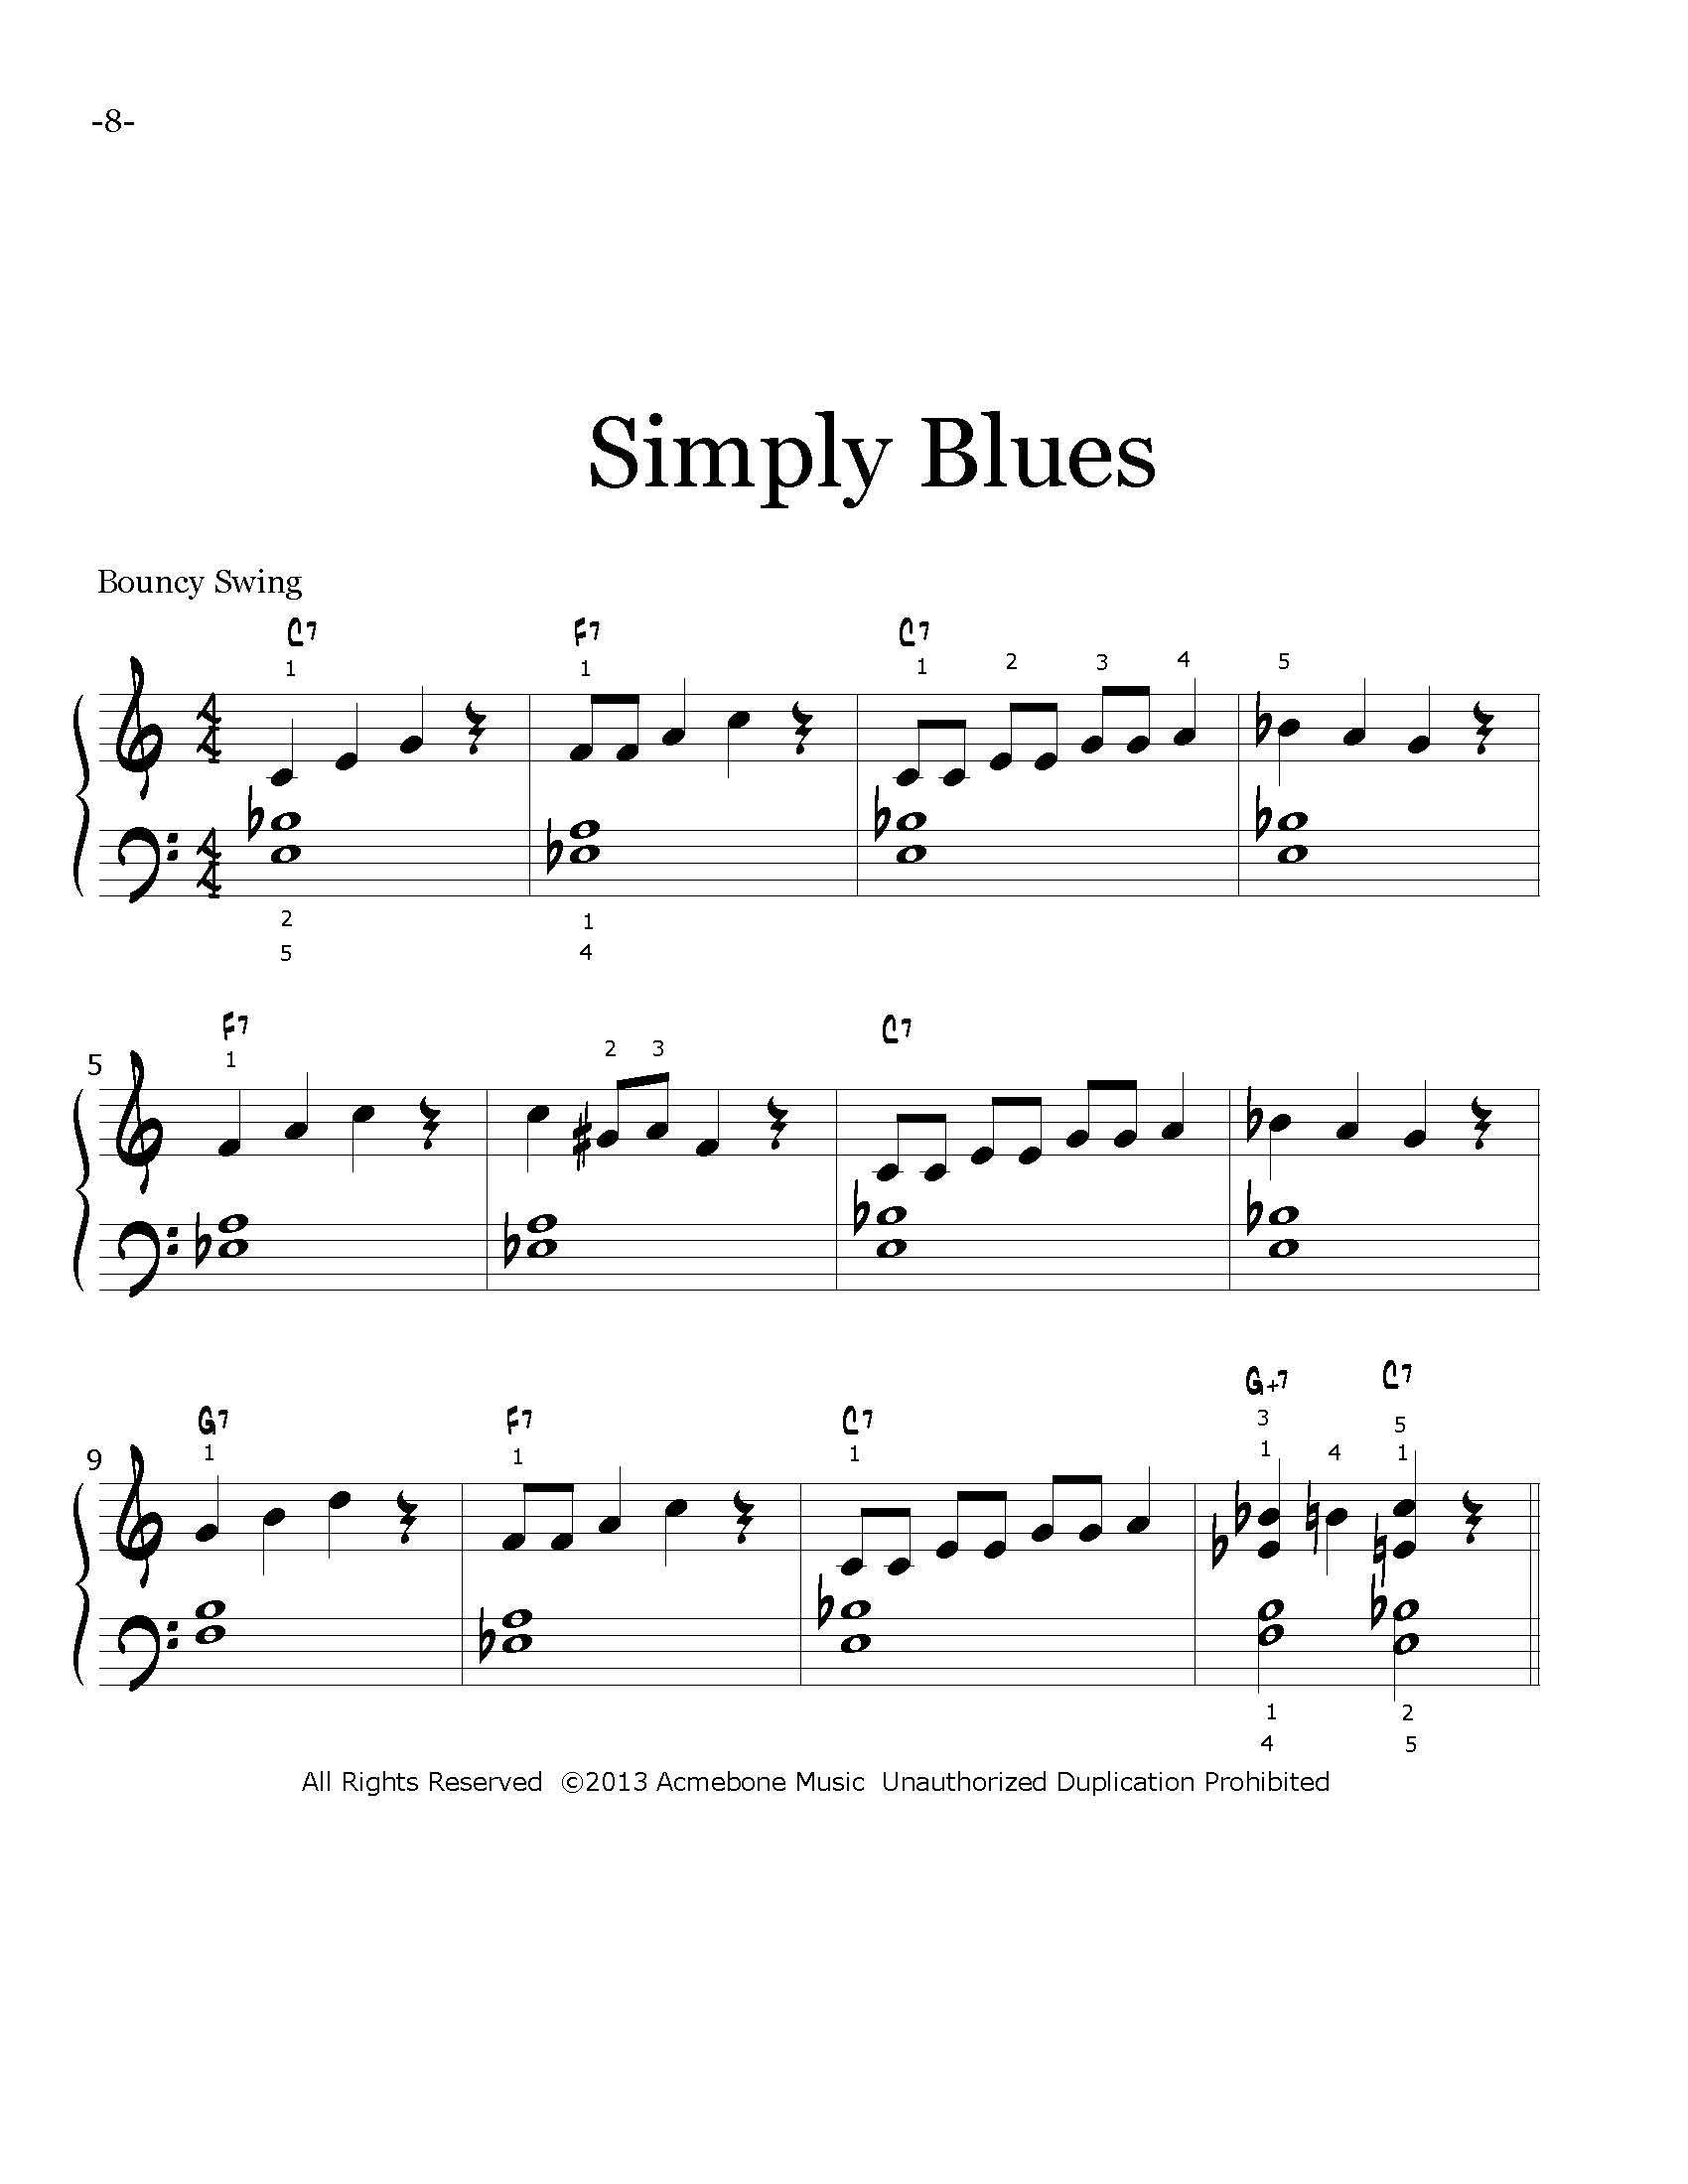 Progressive Jazz Etudes for Piano Bk1 page — :acmebone